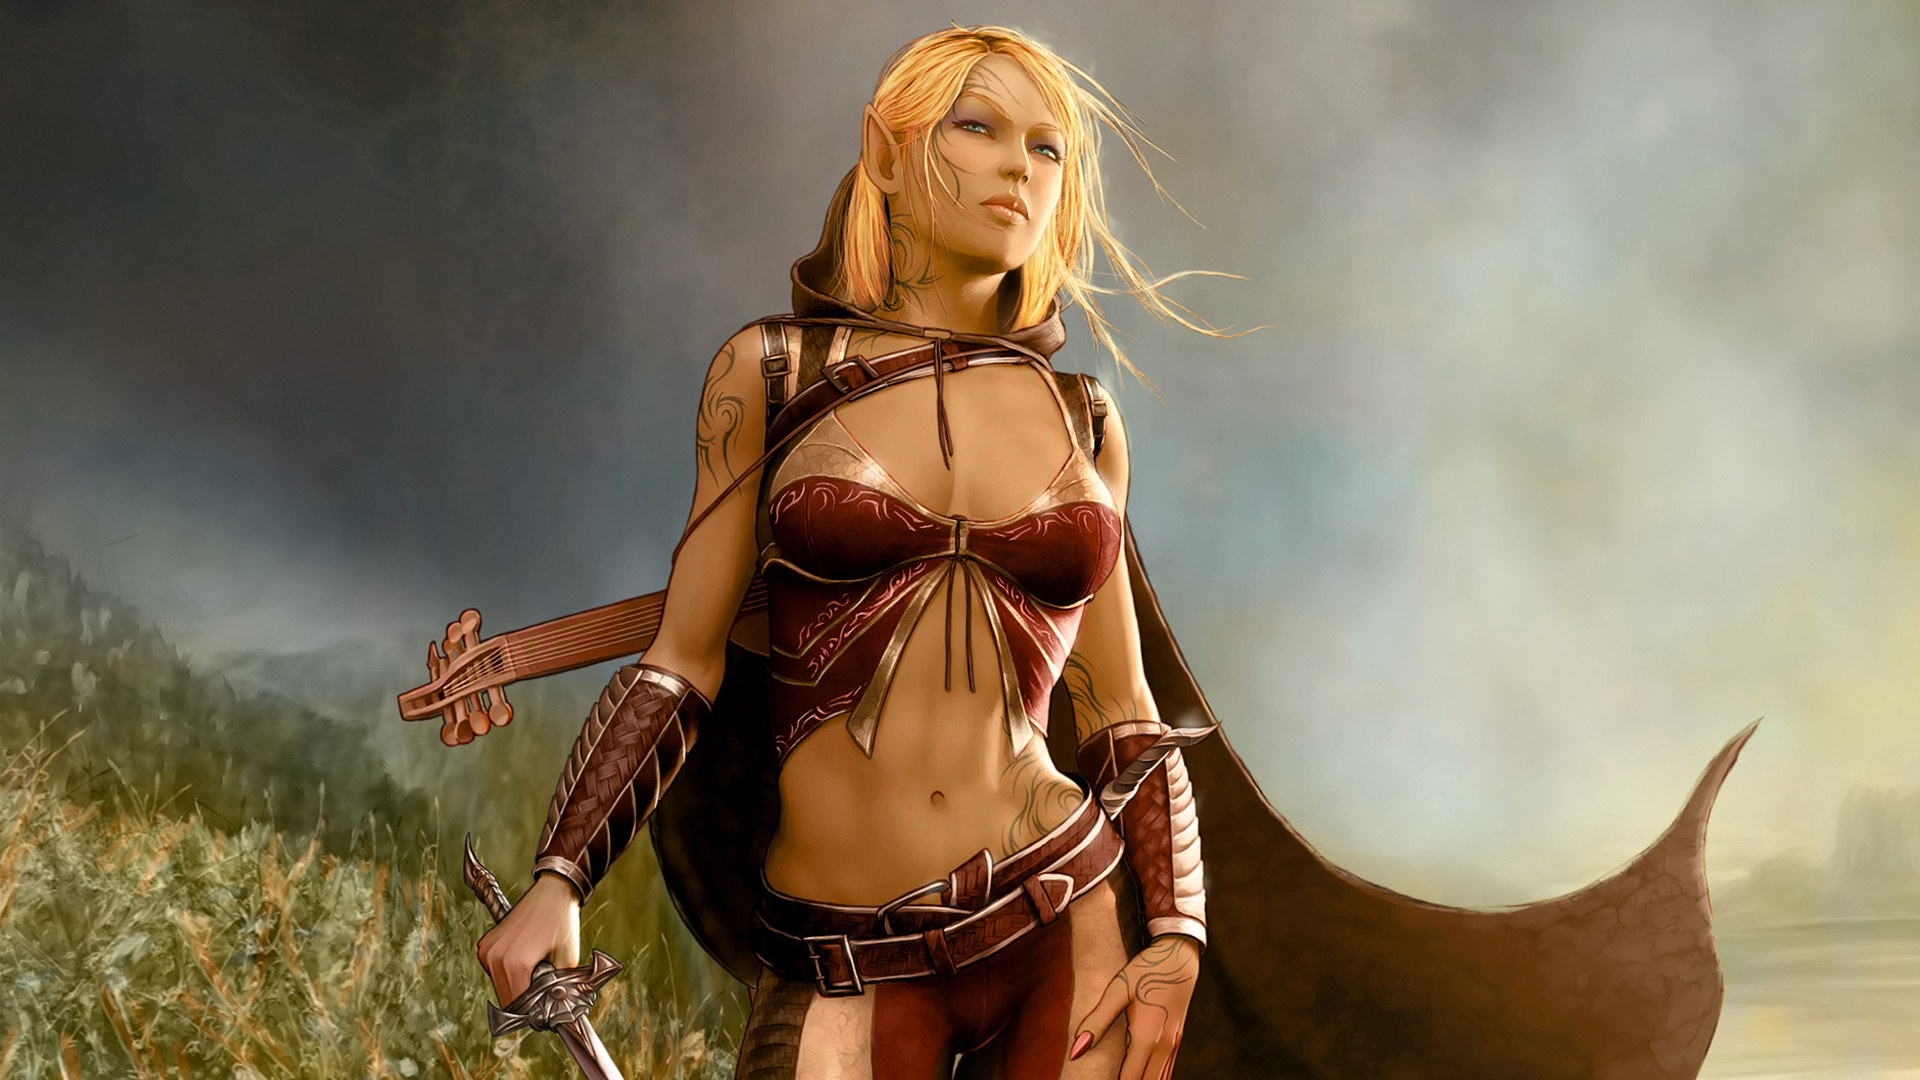 Free naked elves fantasy wallpapers pron toons